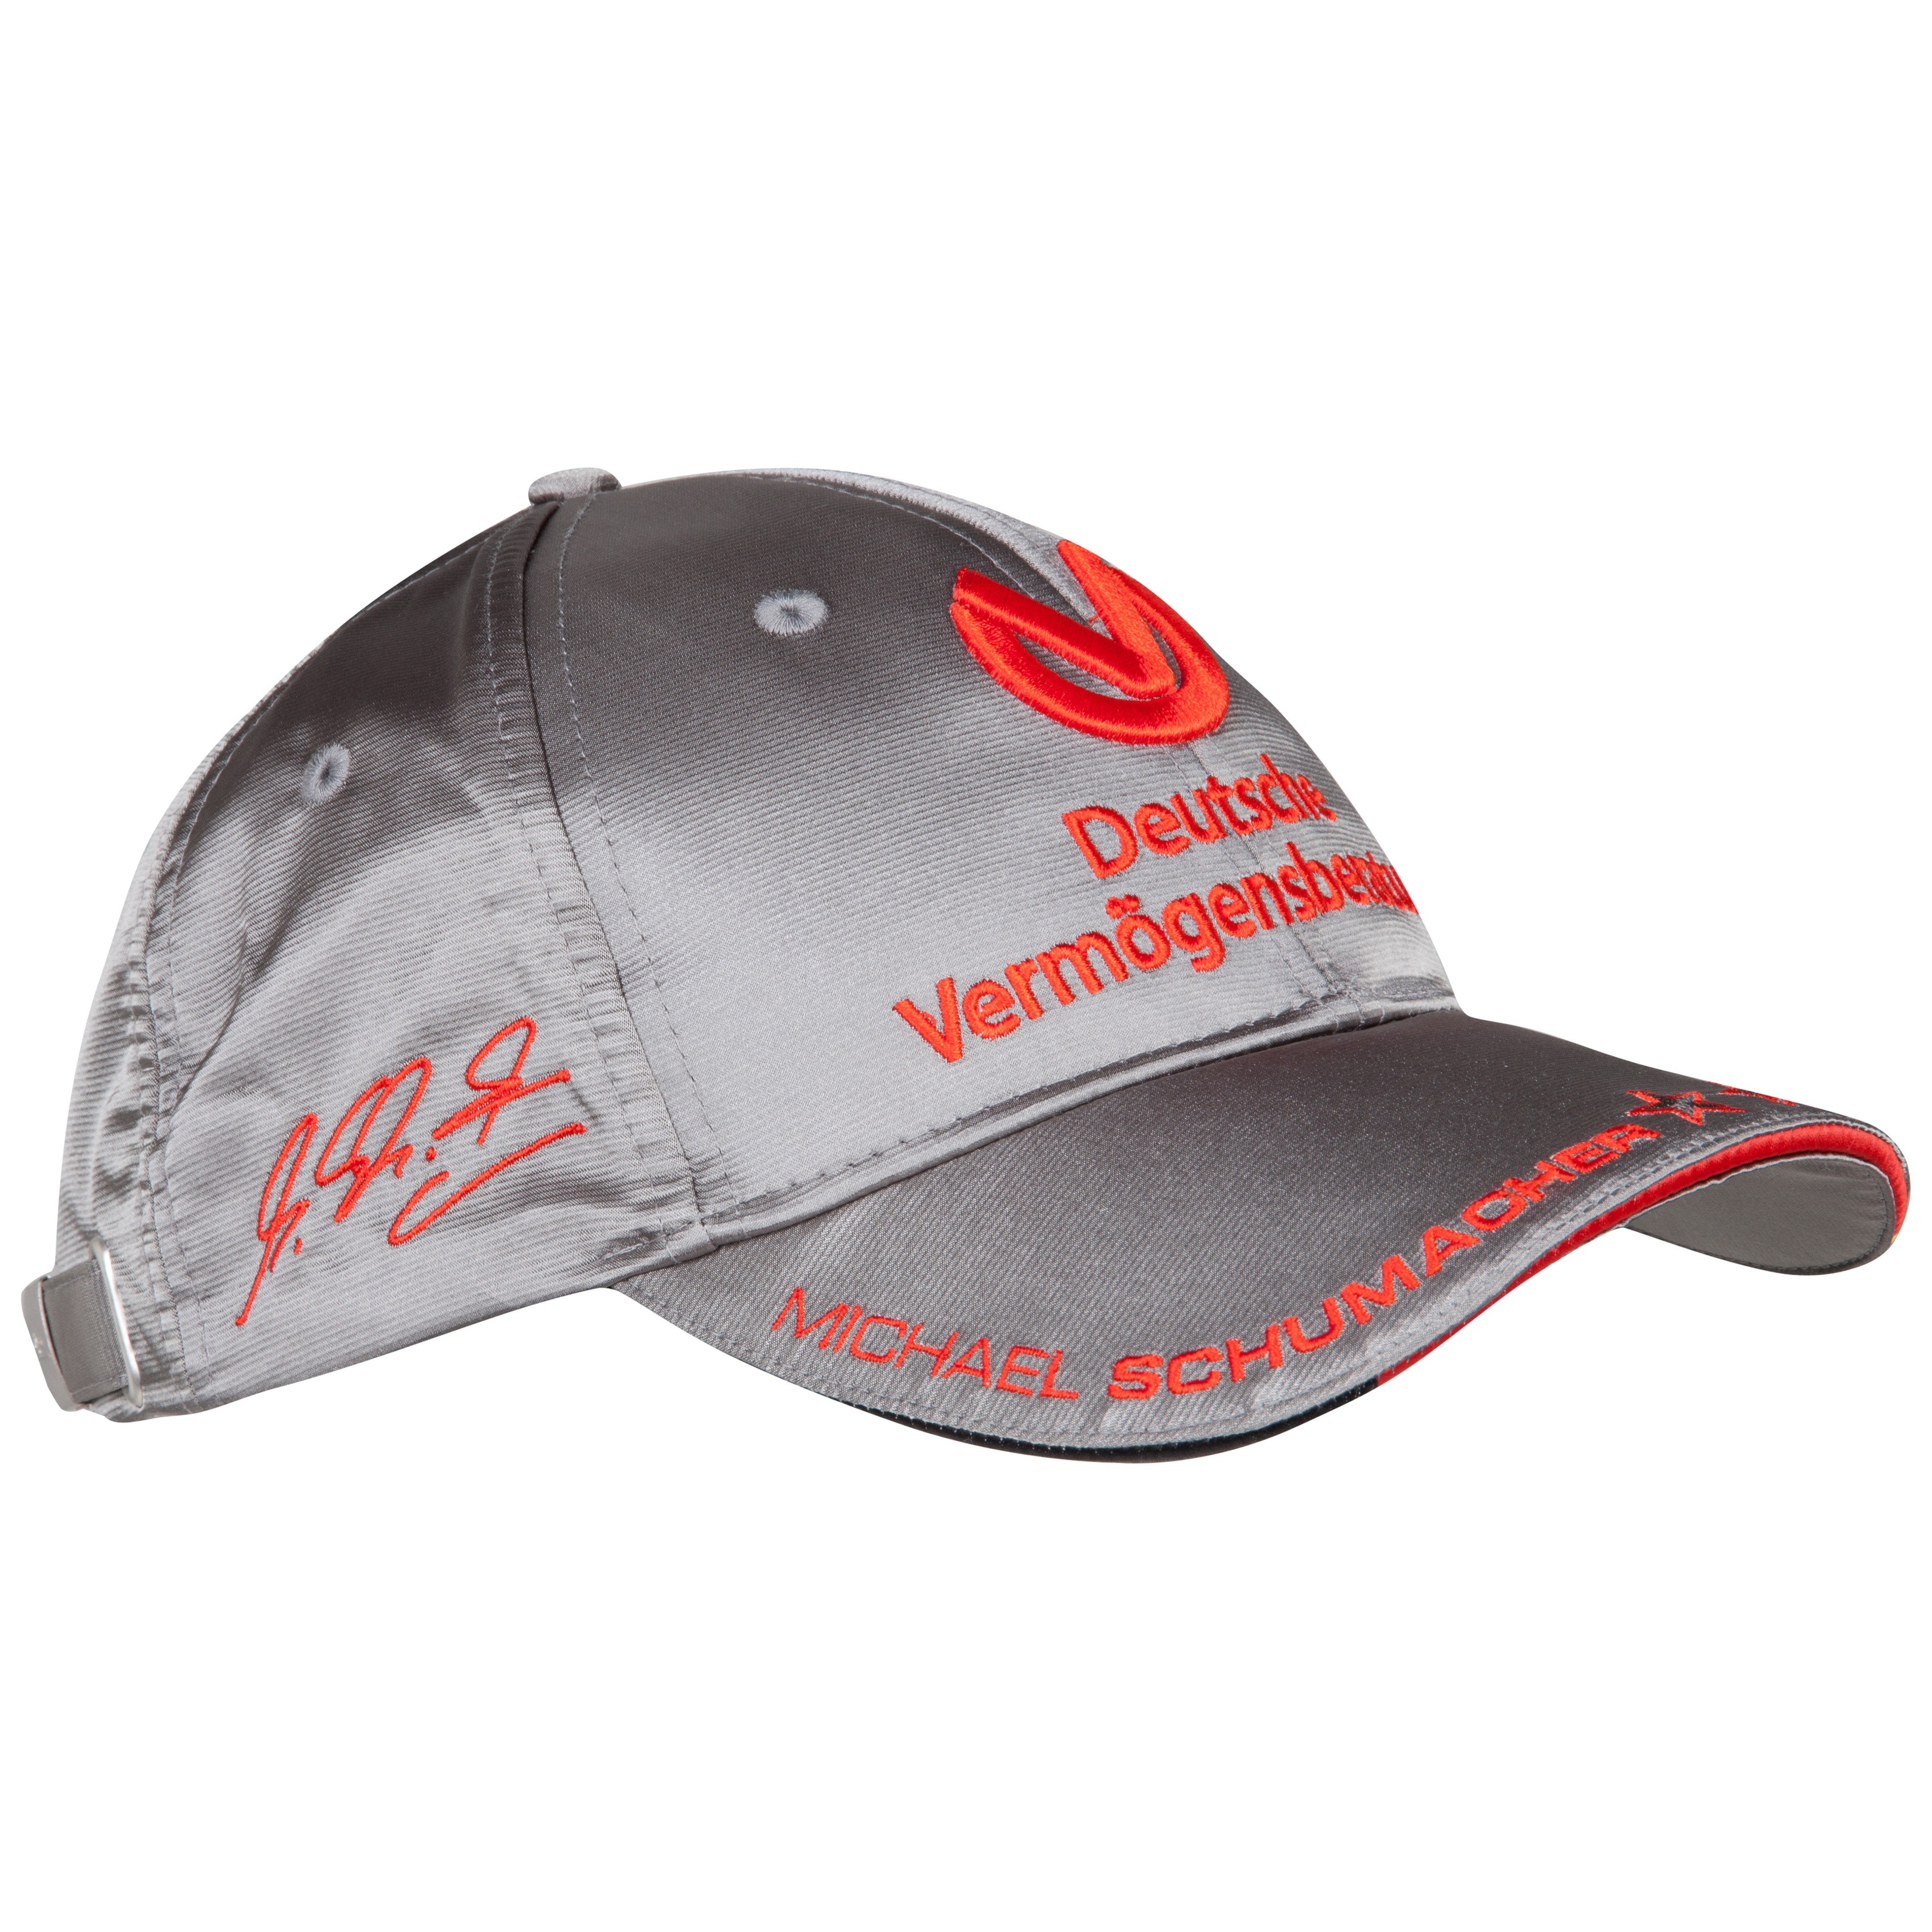 Michael Schumacher 300th Grand Prix DVAG Driver Cap